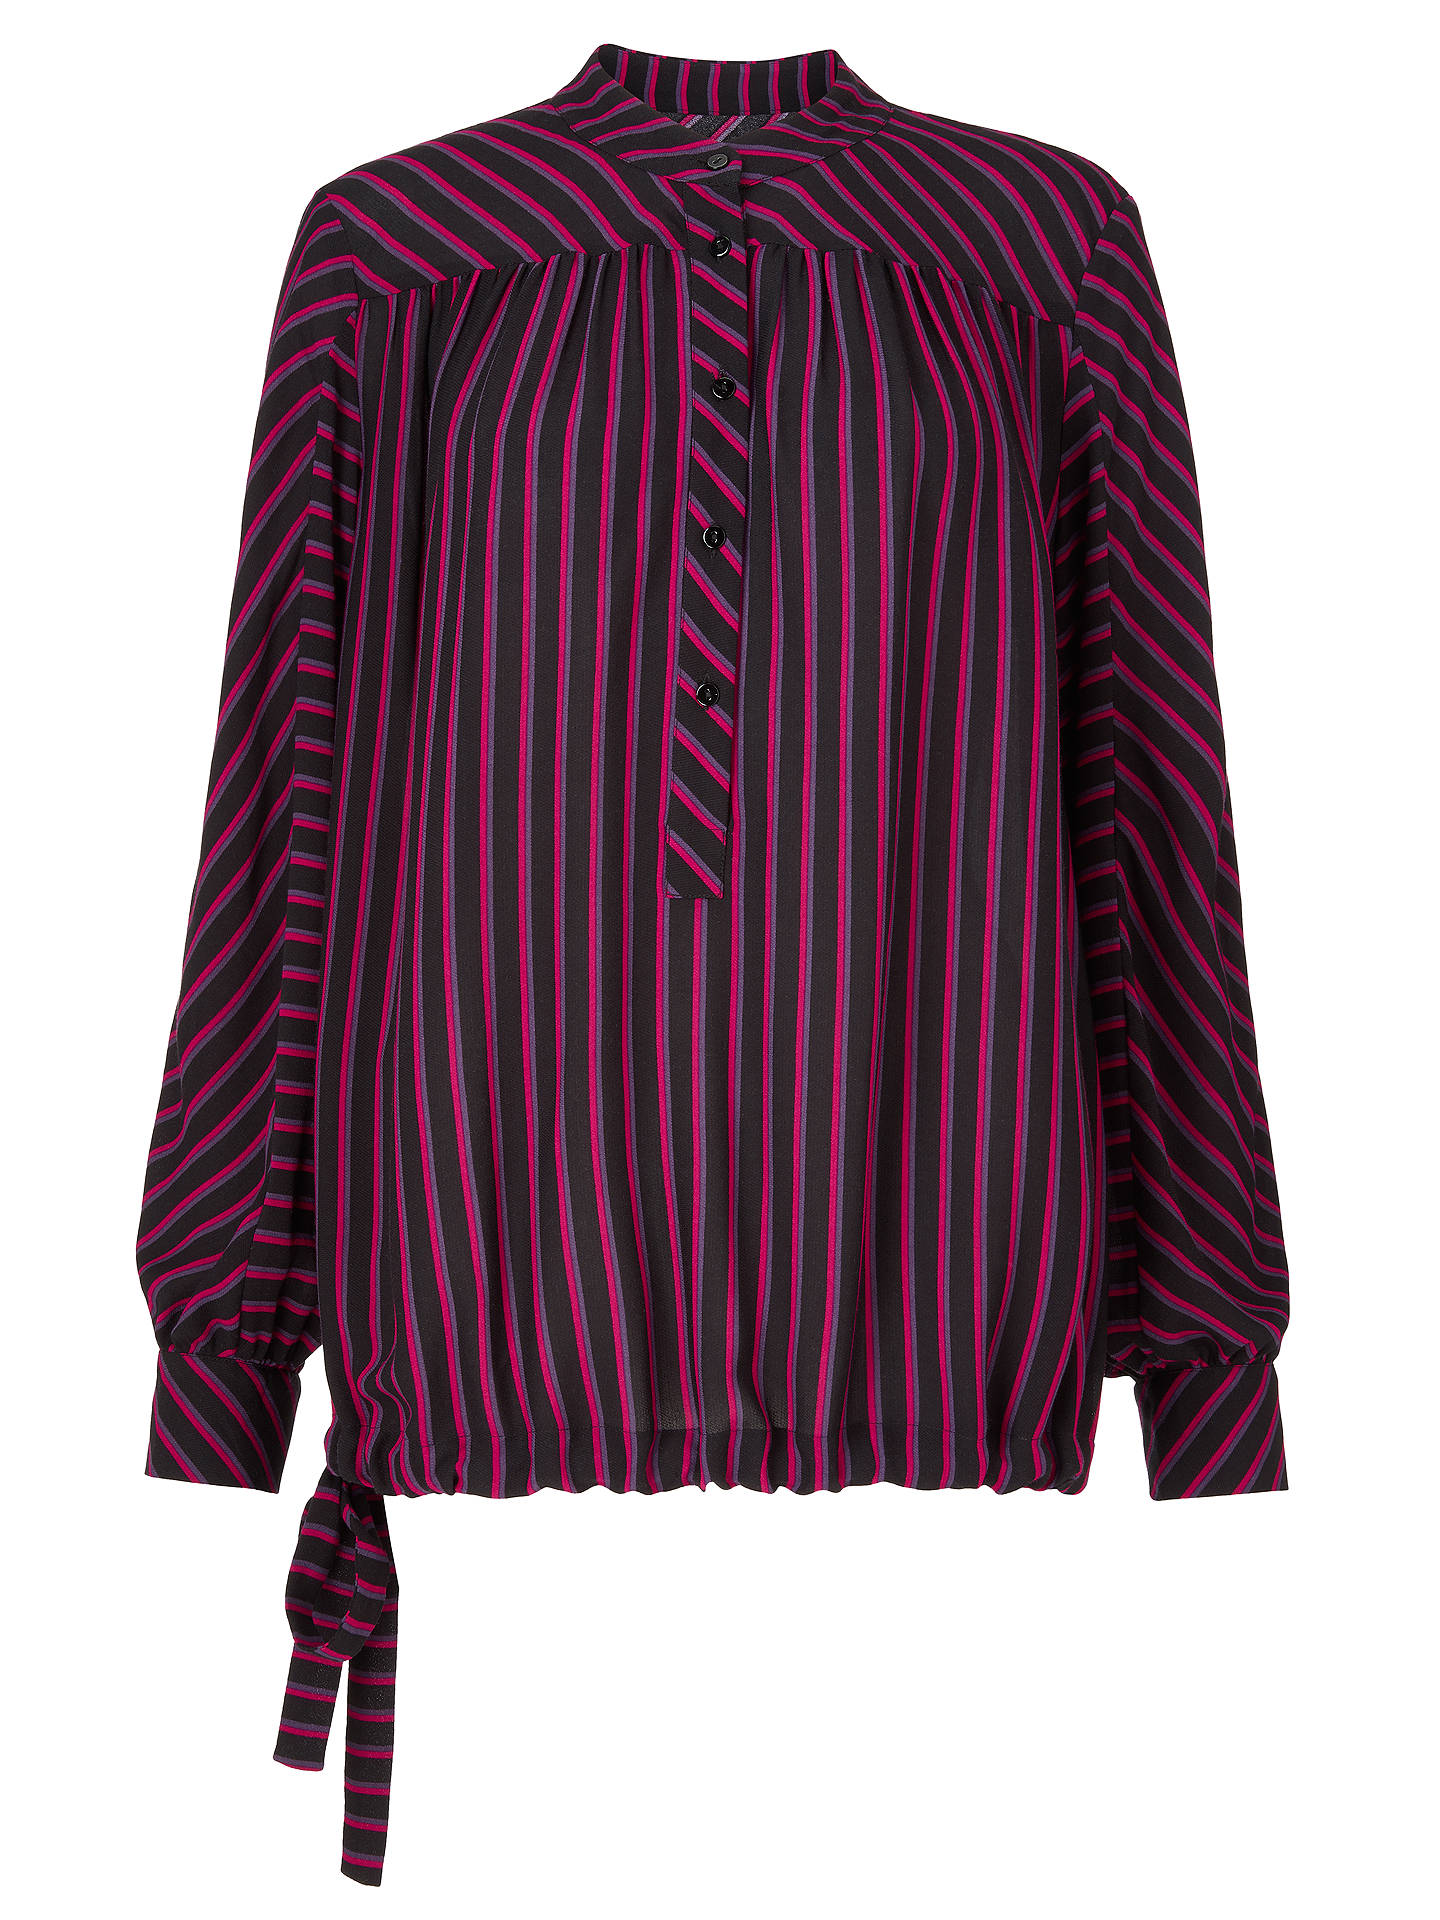 BuyAND/OR Rosetta Blouse, Black/Pink Stripe, 16 Online at johnlewis.com